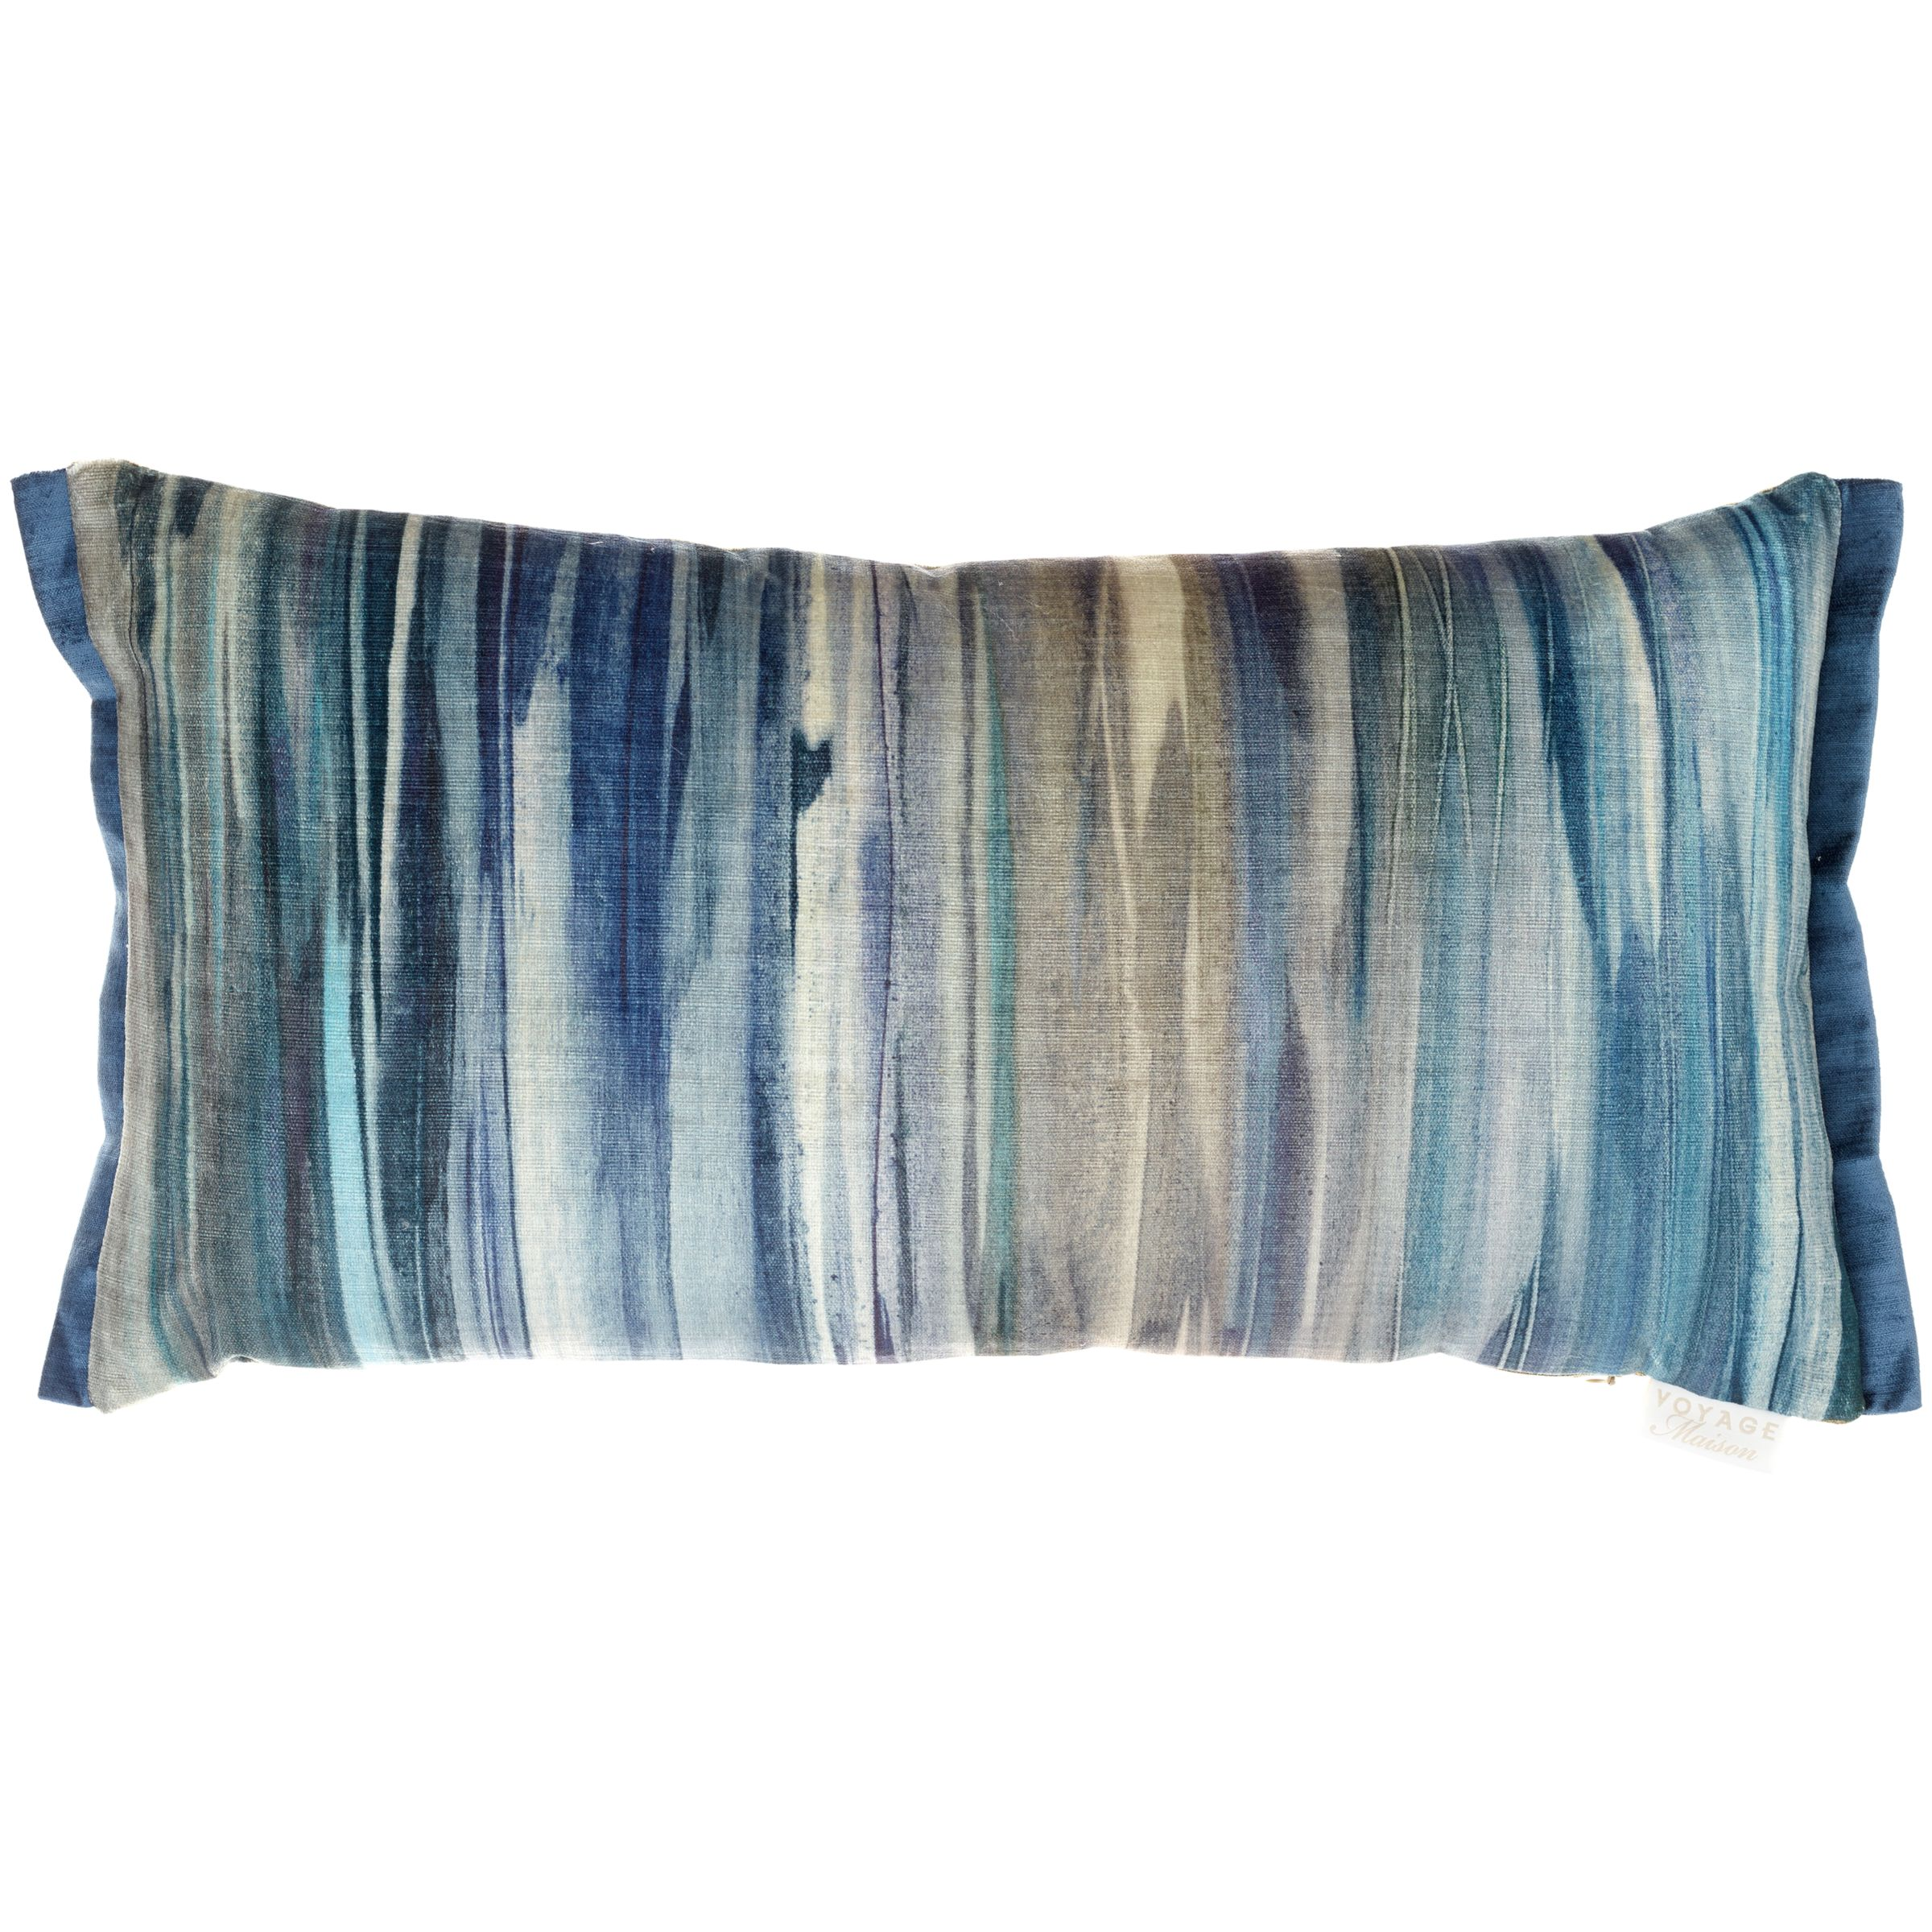 Voyage Voyage Galatea Cushion, Midnight